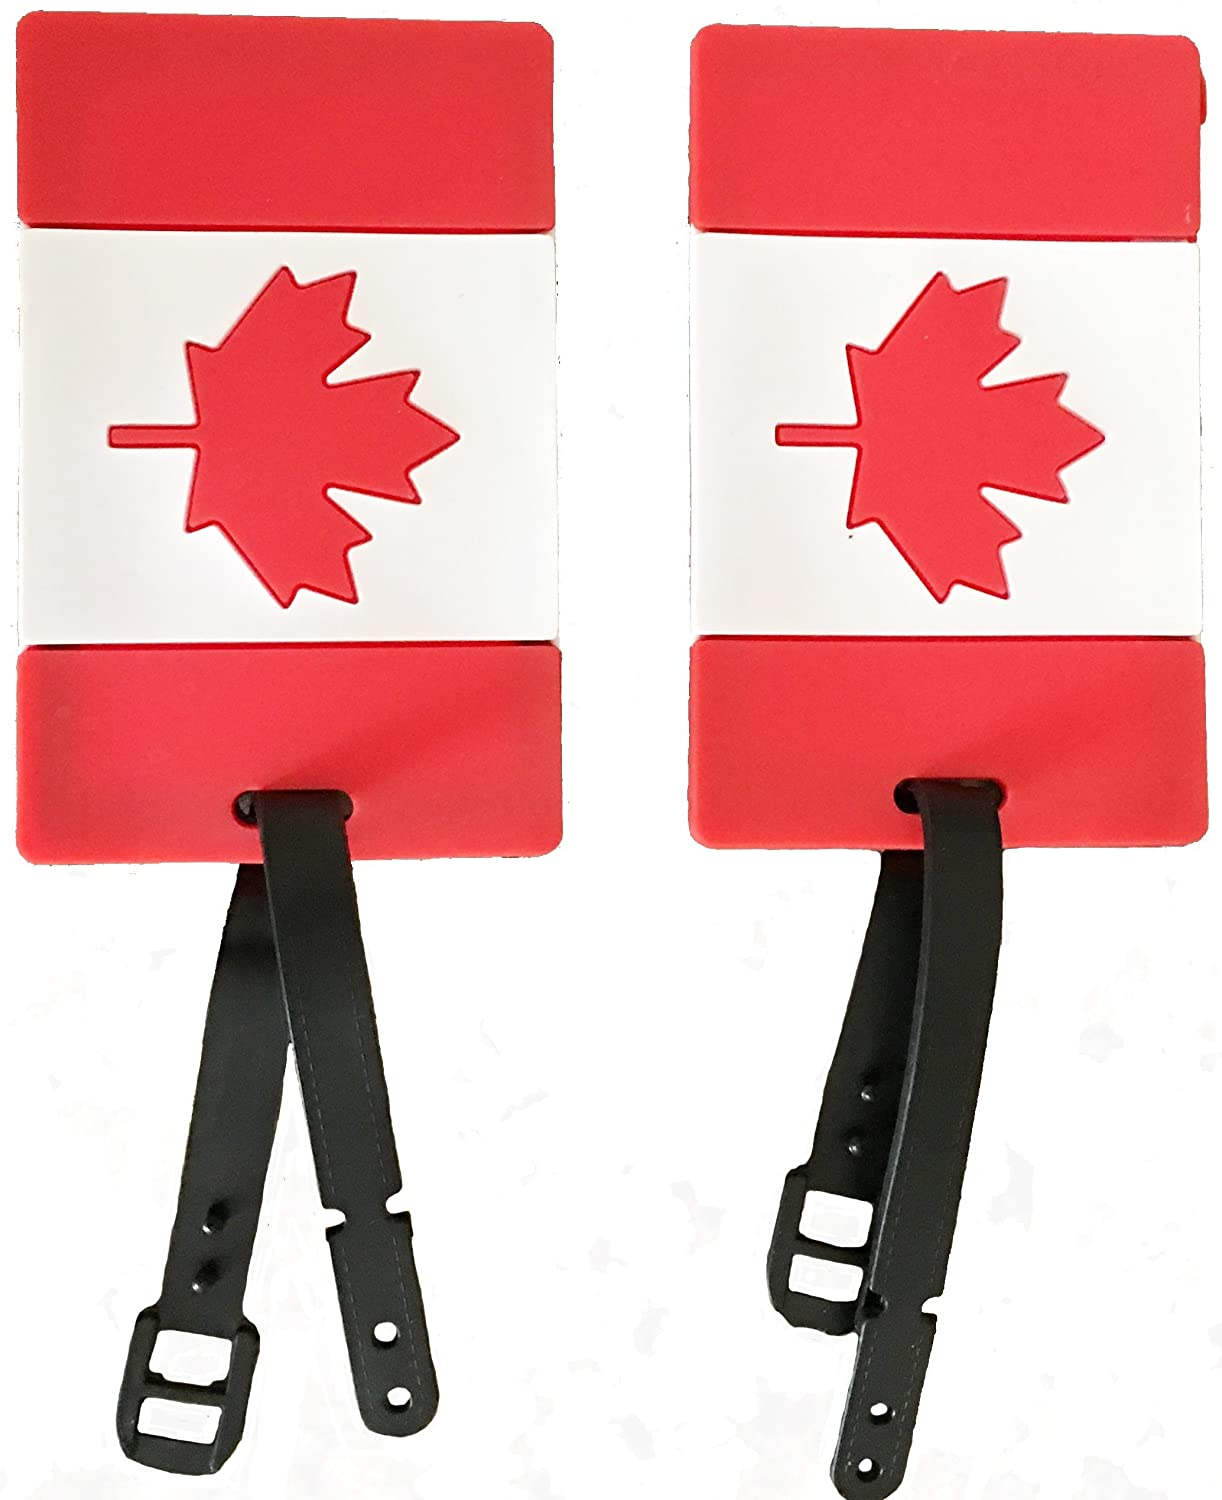 2-Piece Set of Luggage Tags Carry-On Suitcase Travel Air Flight Tags Archibolt